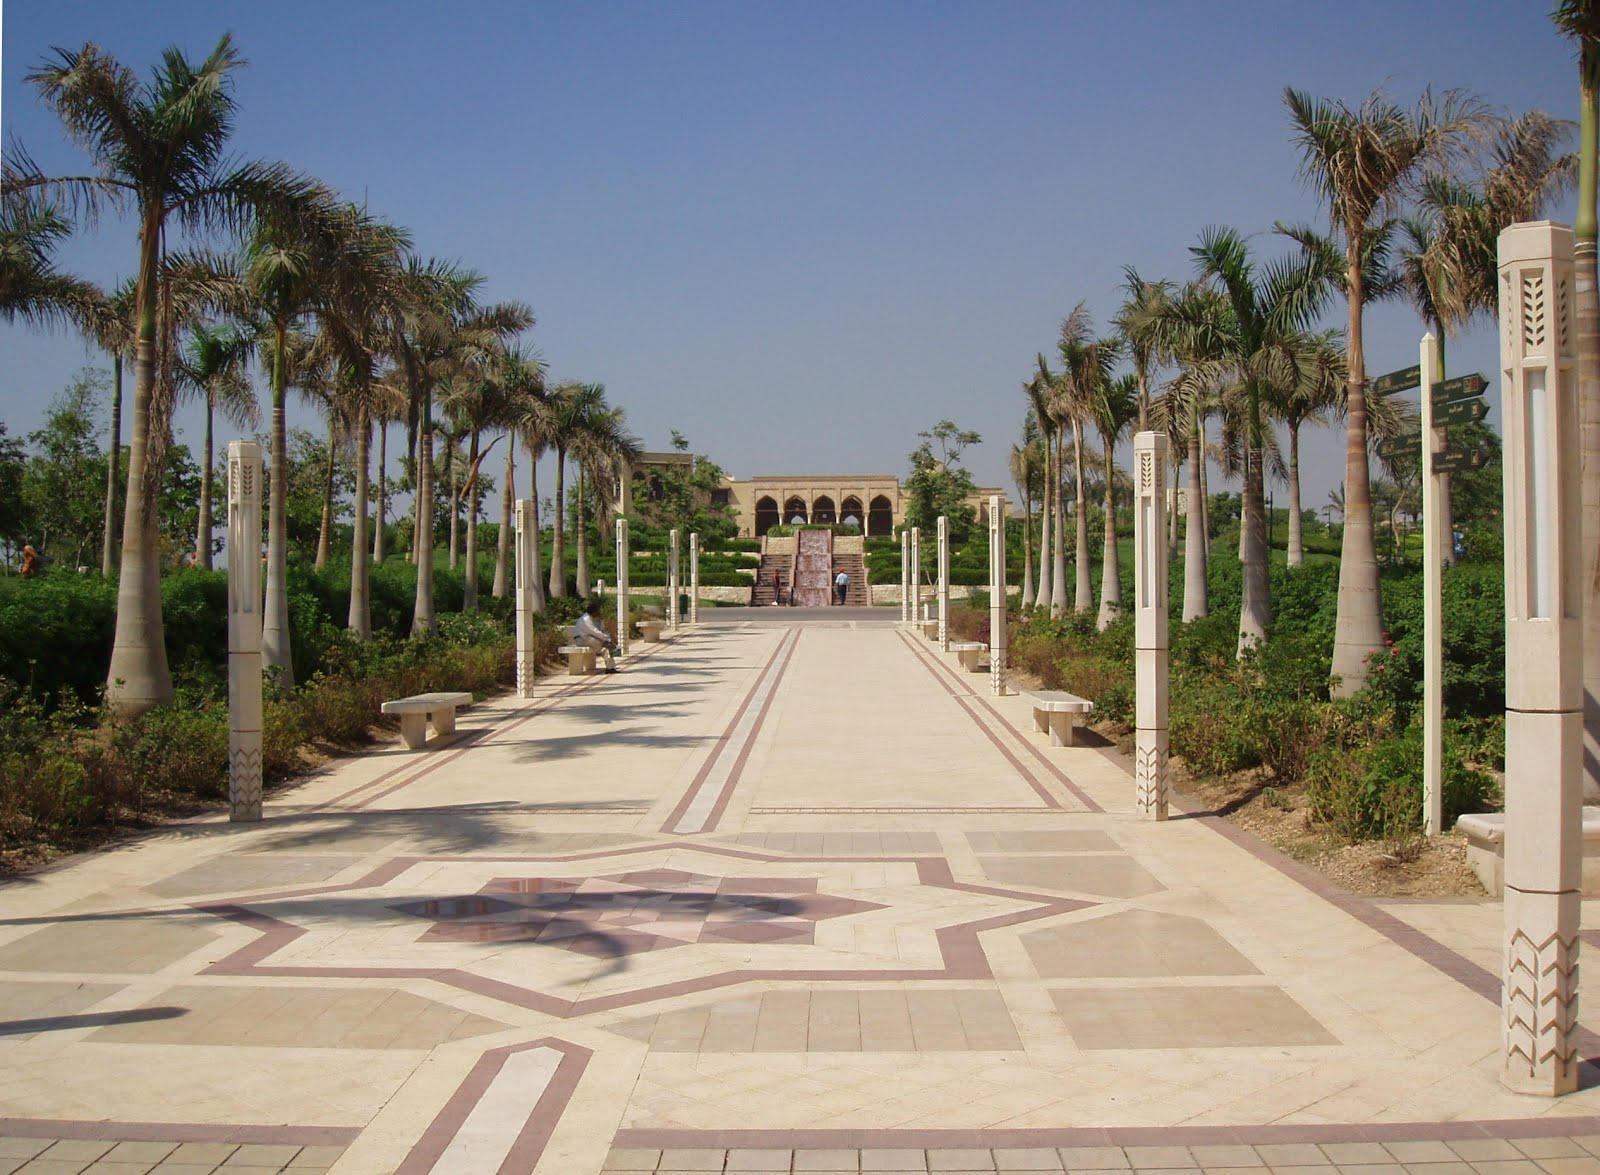 Media Coverage and Users' Reactions: Al Azhar Park in Cairo Re-examined